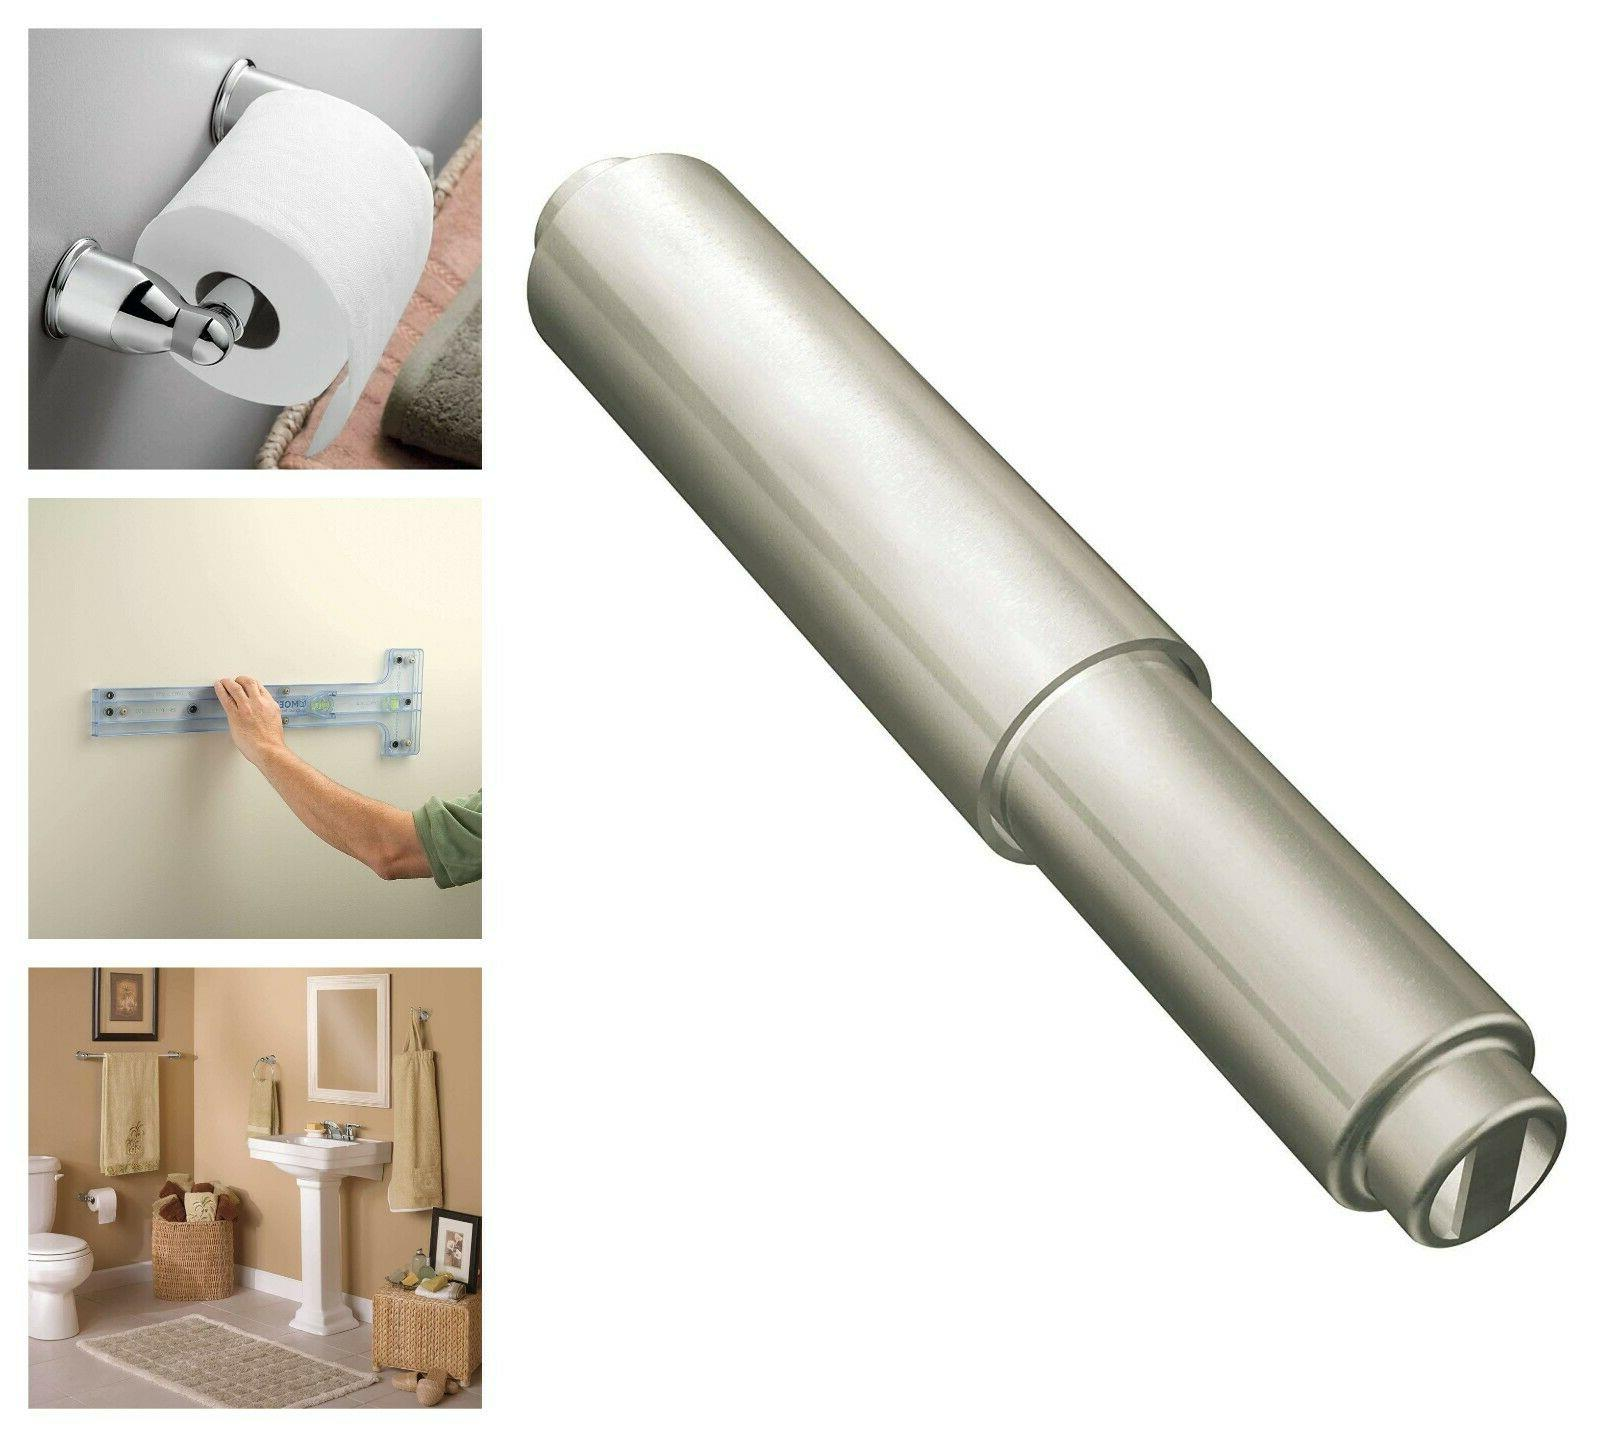 satin nickel finish toilet paper roller toilet